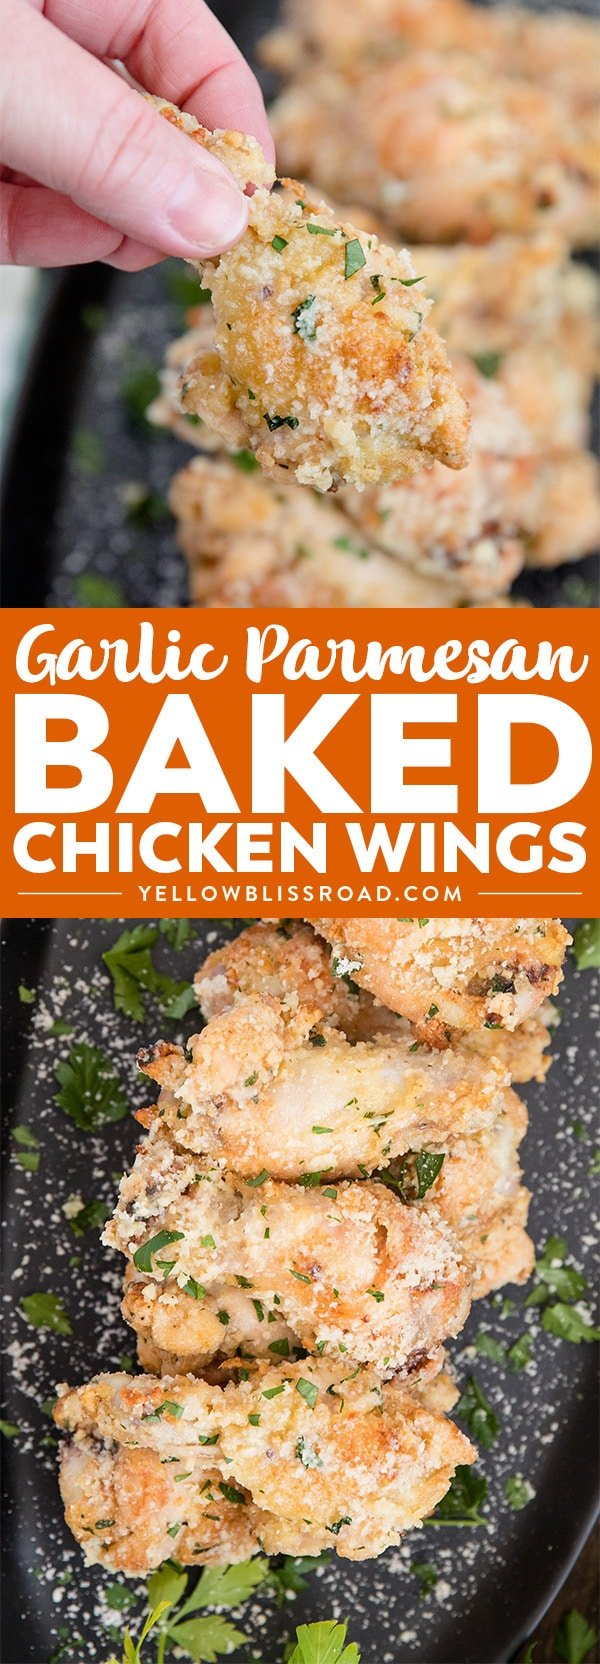 Crispy Baked Garlic Parmesan Chicken Wings in garlic parmesan sauce - two images with title text collage